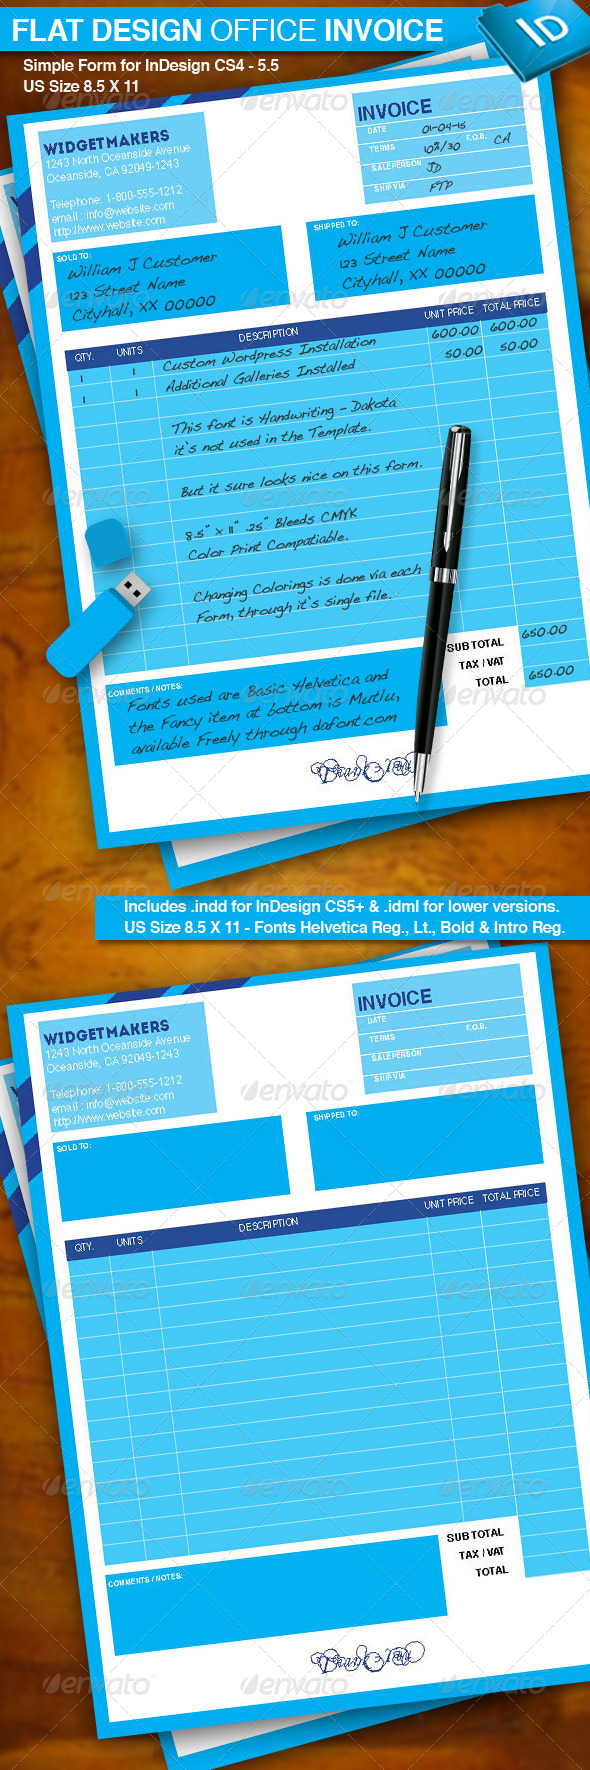 Flat Design Office Invoice - Proposals & Invoices Stationery